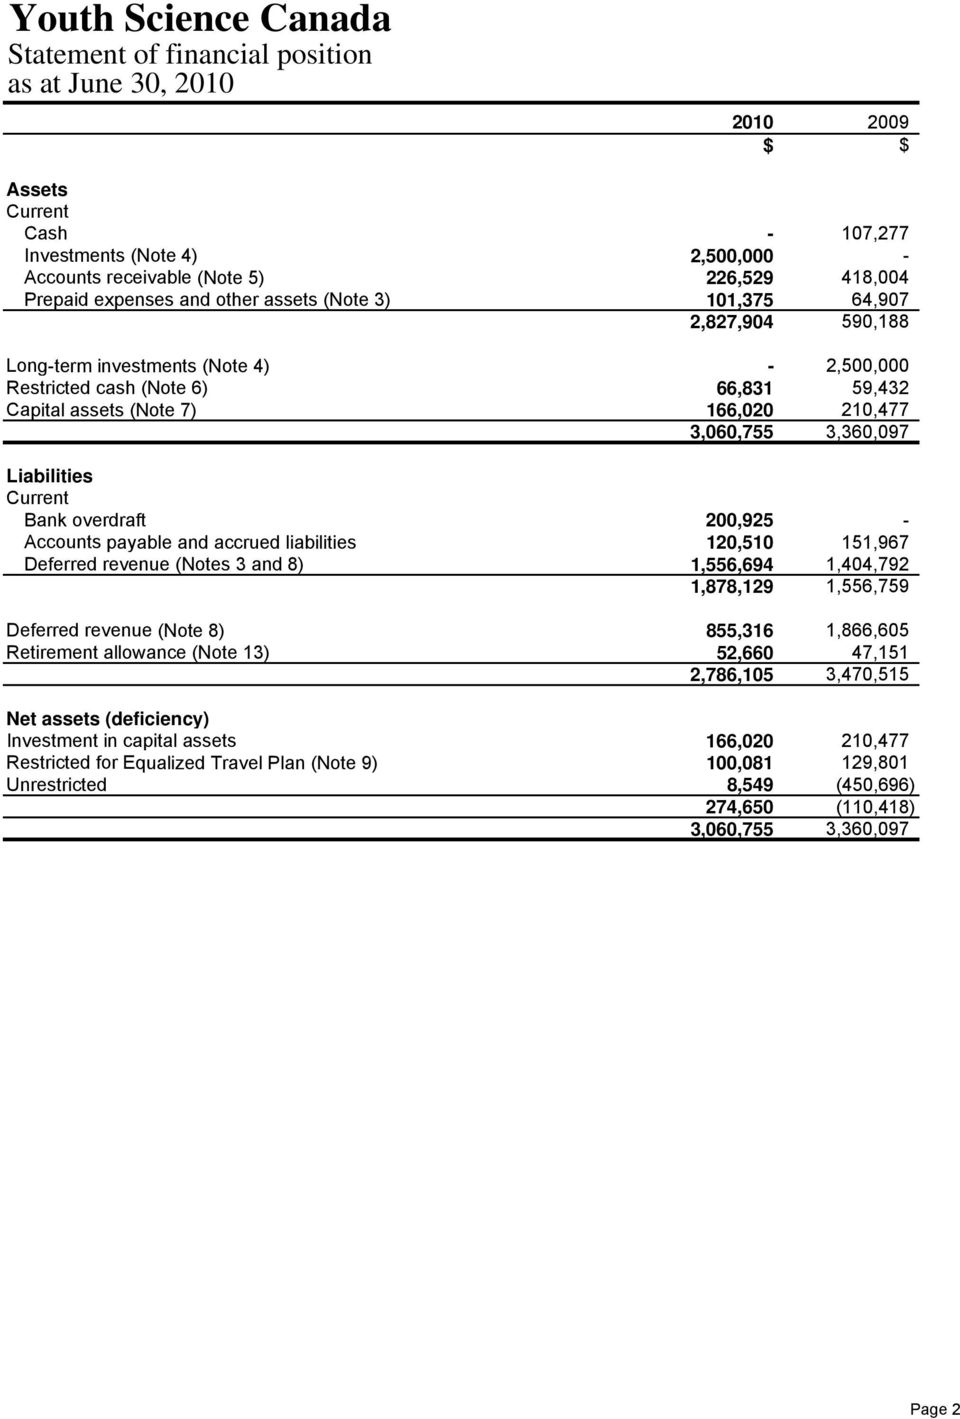 overdraft 200,925 - Accounts payable and accrued liabilities 120,510 151,967 Deferred revenue (Notes 3 and 8) 1,556,694 1,404,792 1,878,129 1,556,759 Deferred revenue (Note 8) 855,316 1,866,605